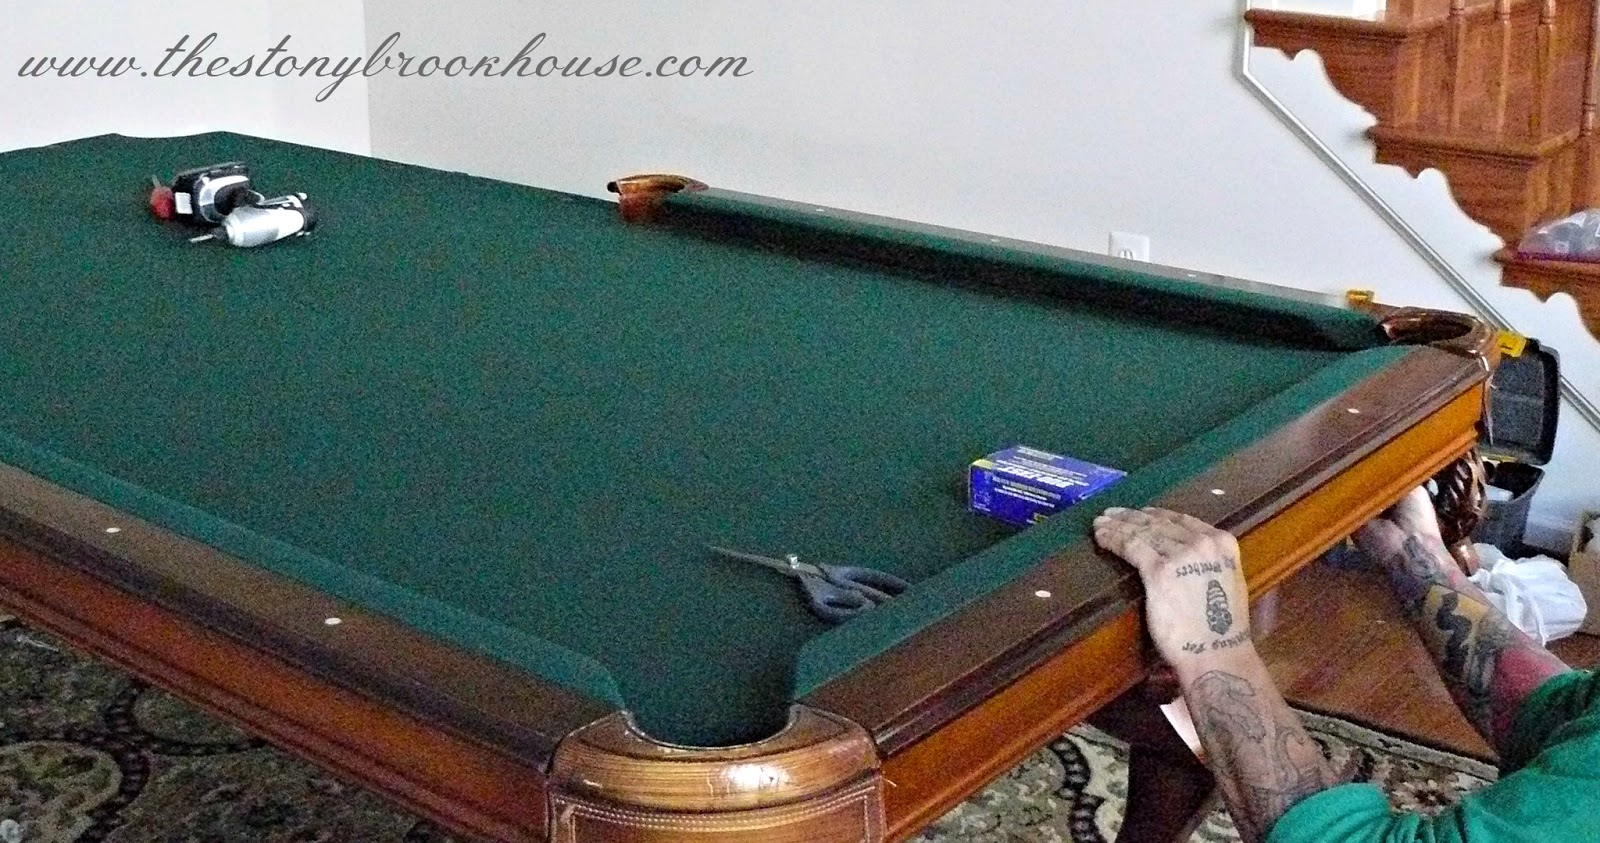 Build your own pool table plans - Build Your Own Pool Table Plans 38